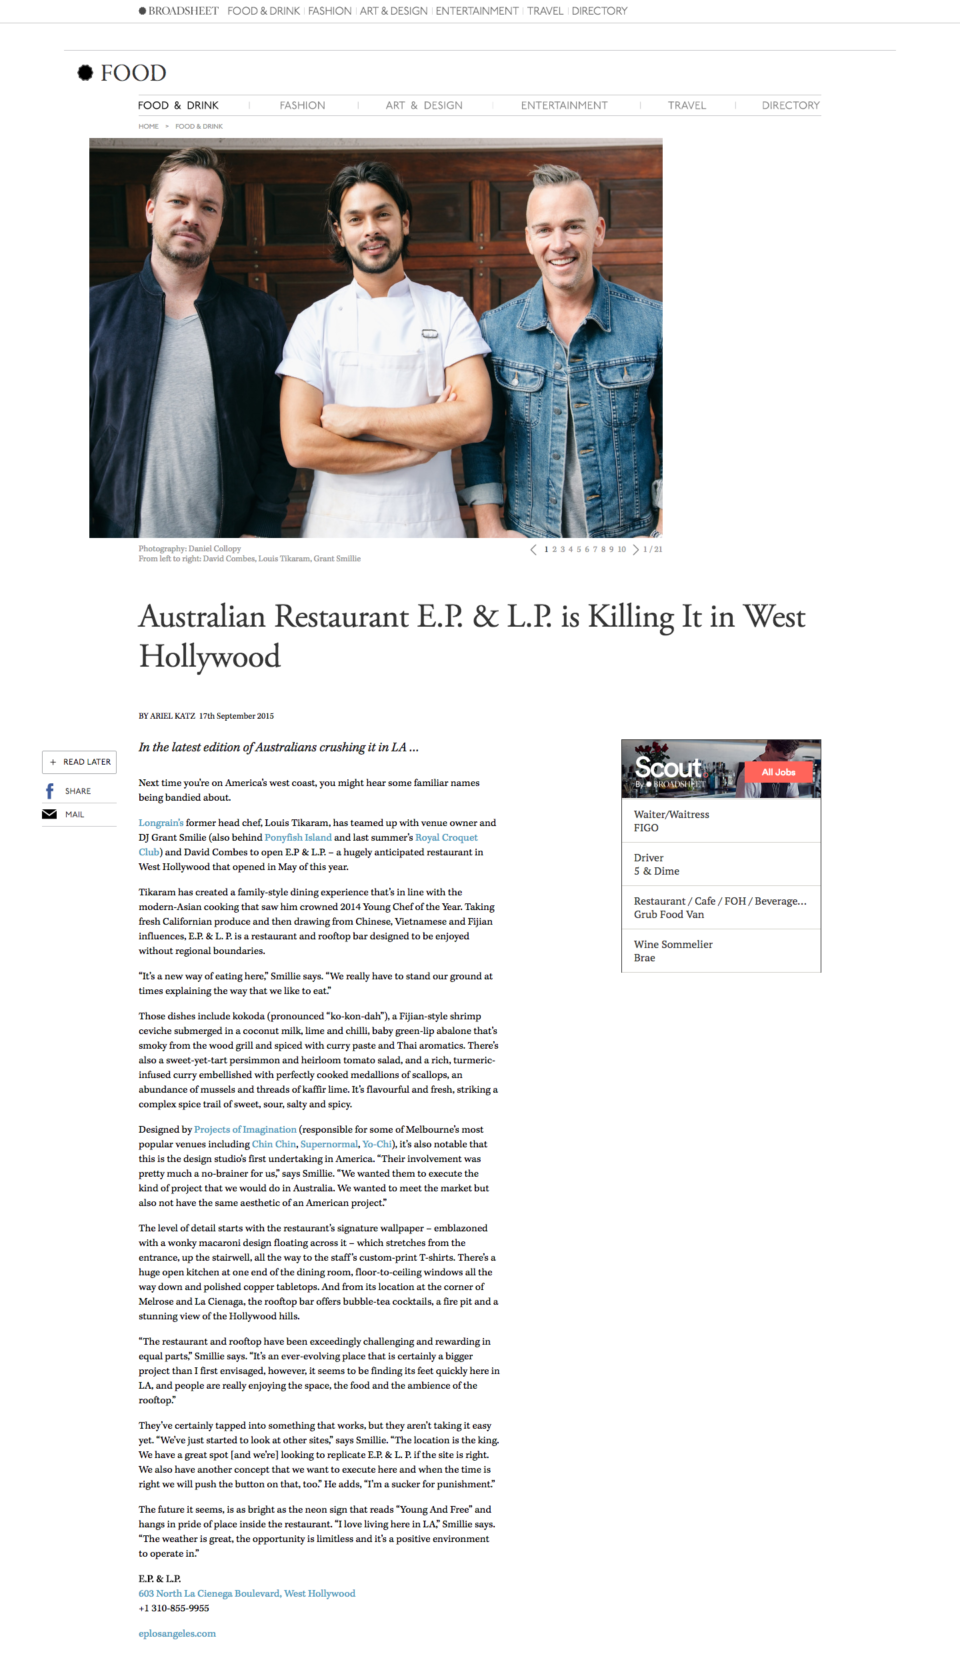 screencapture-broadsheet-au-melbourne-food-and-drink-article-australian-restaurant-ep-lp-killing-it-west-hollywood-1471989378236